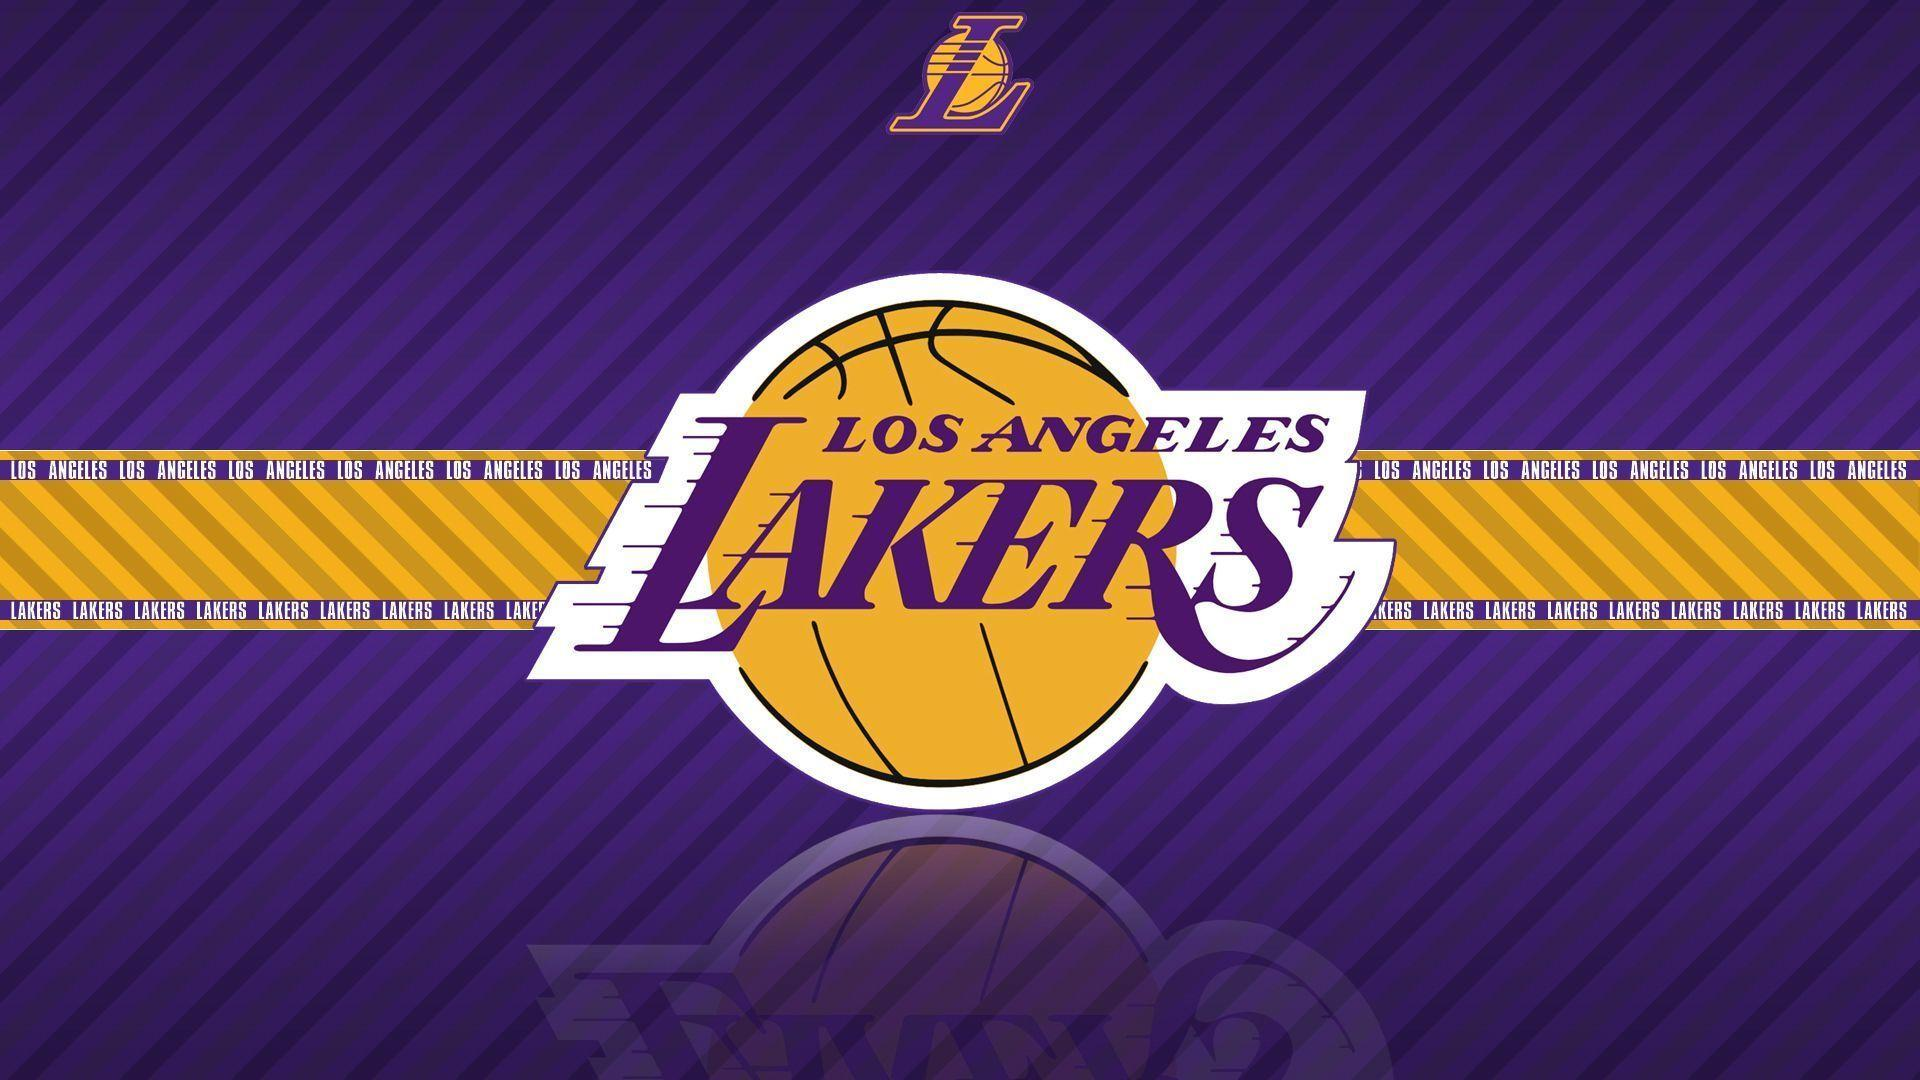 Nba Team Logos Wallpaper Hd